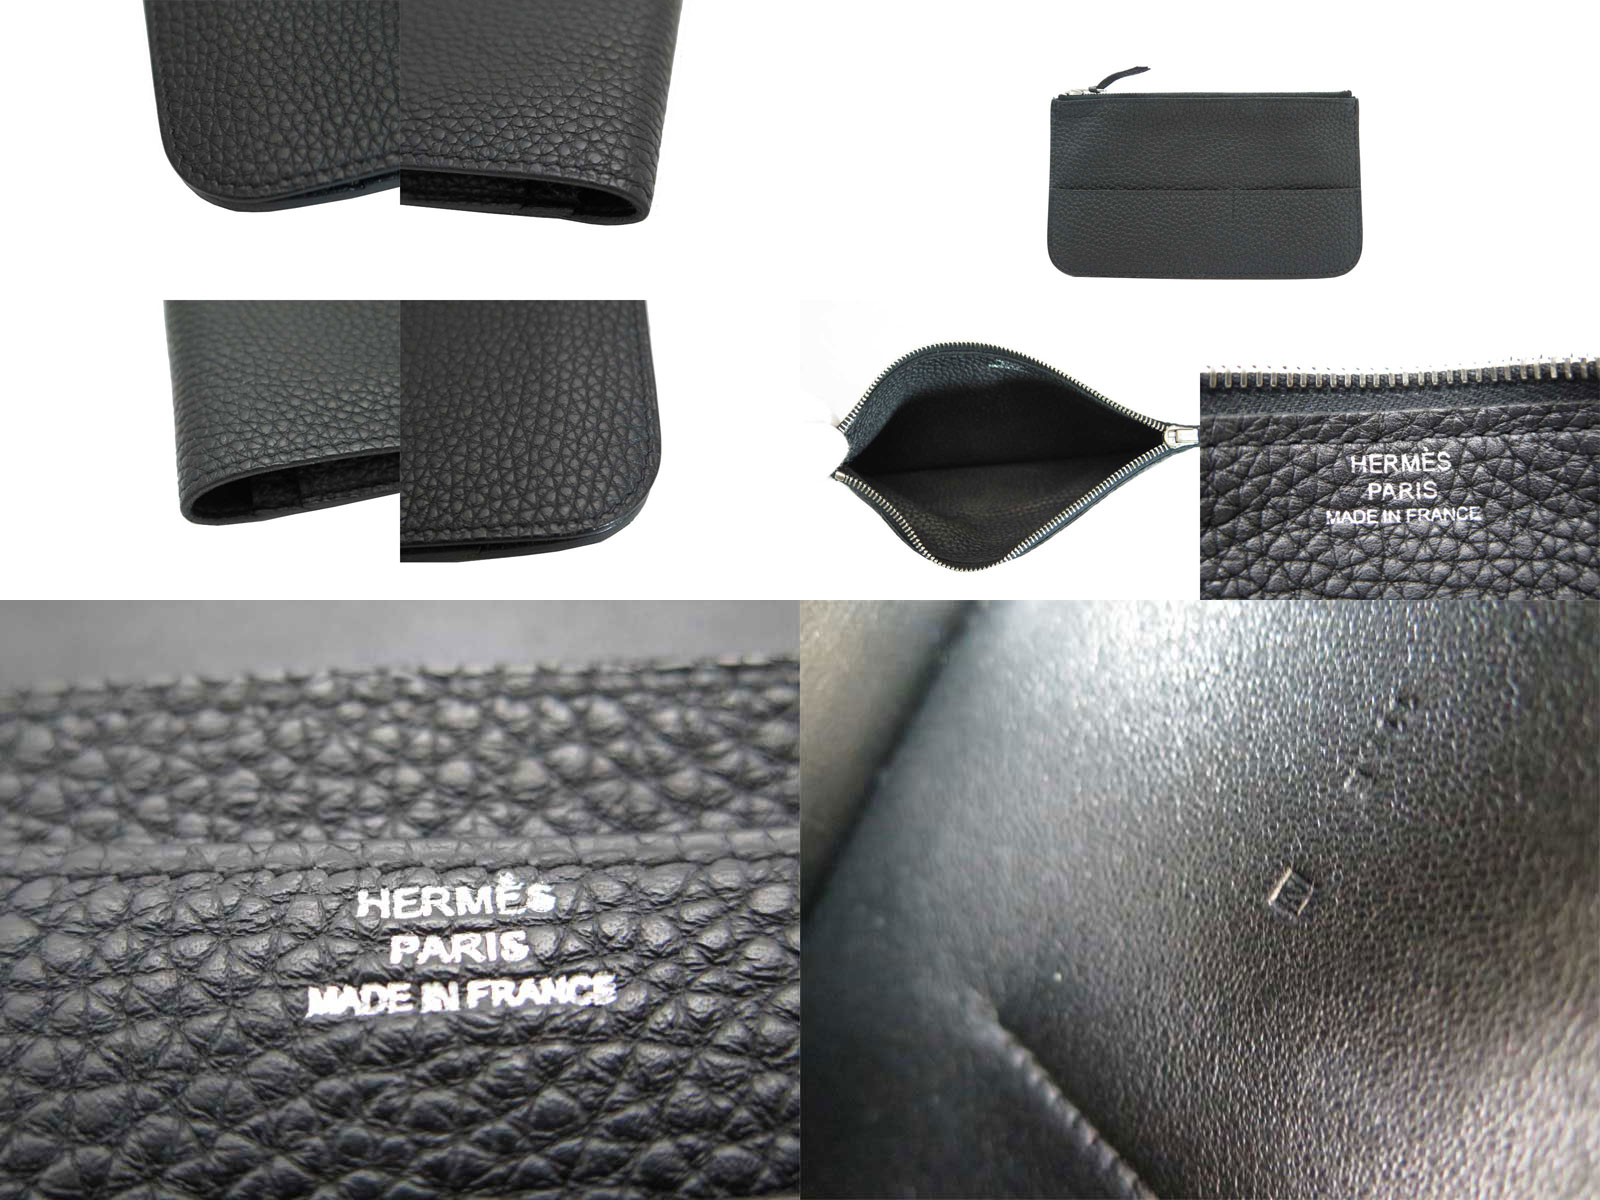 hermes purses where to find serial